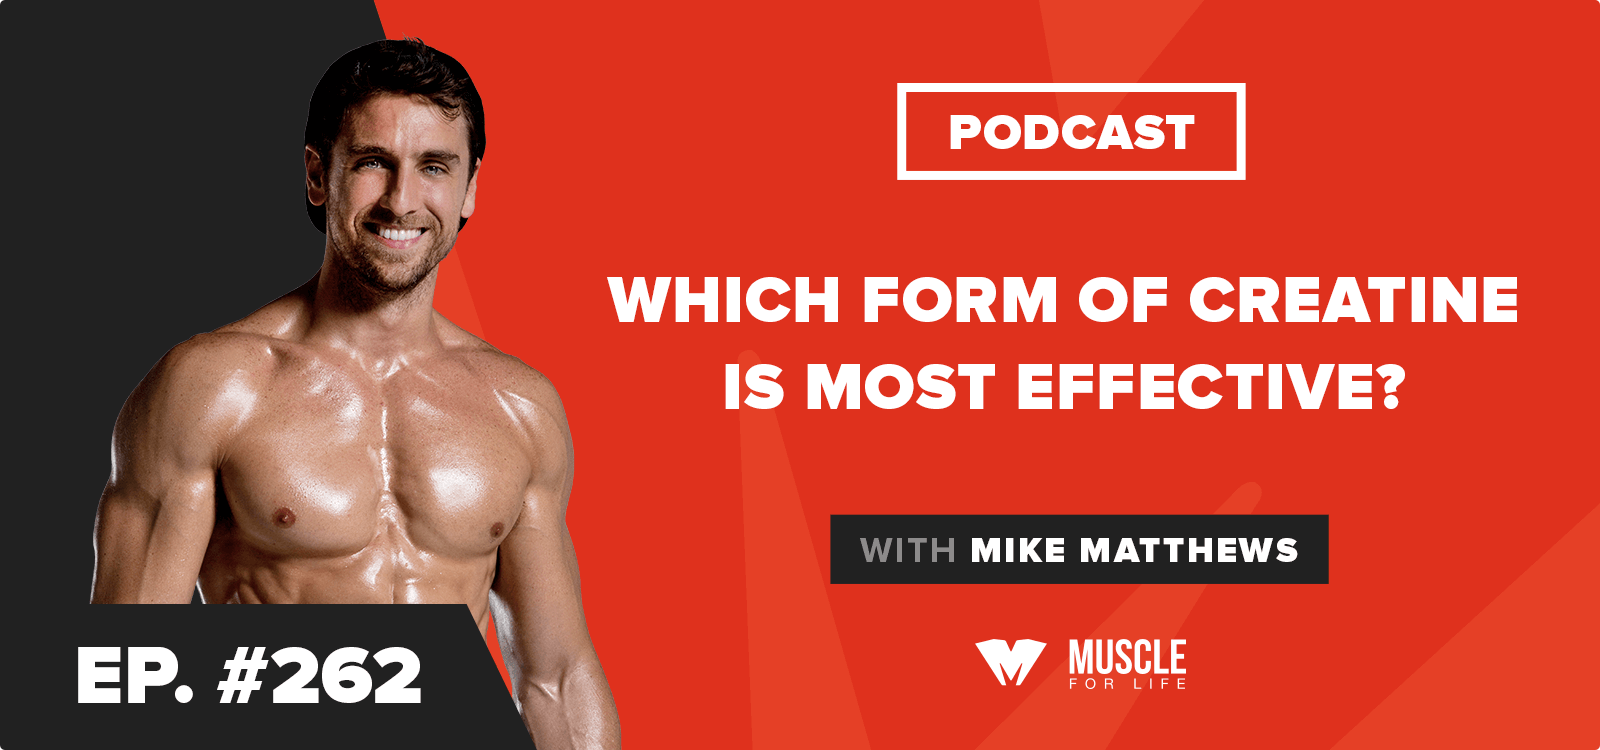 Which Form of Creatine is Most Effective?